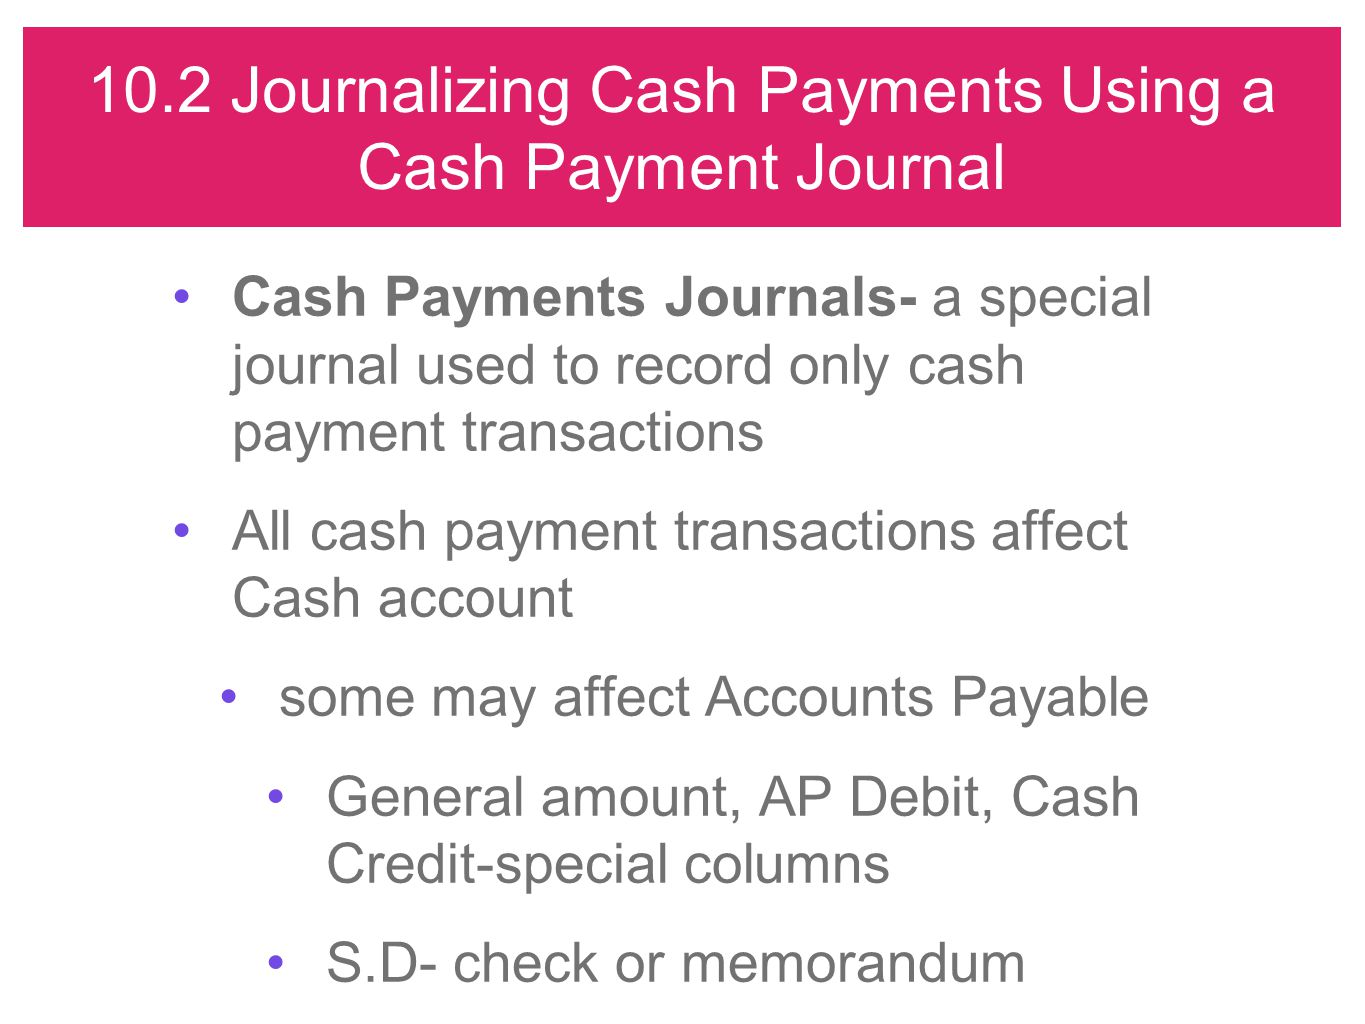 10.2 Journalizing Cash Payments Using a Cash Payment Journal Cash Payments Journals- a special journal used to record only cash payment transactions A